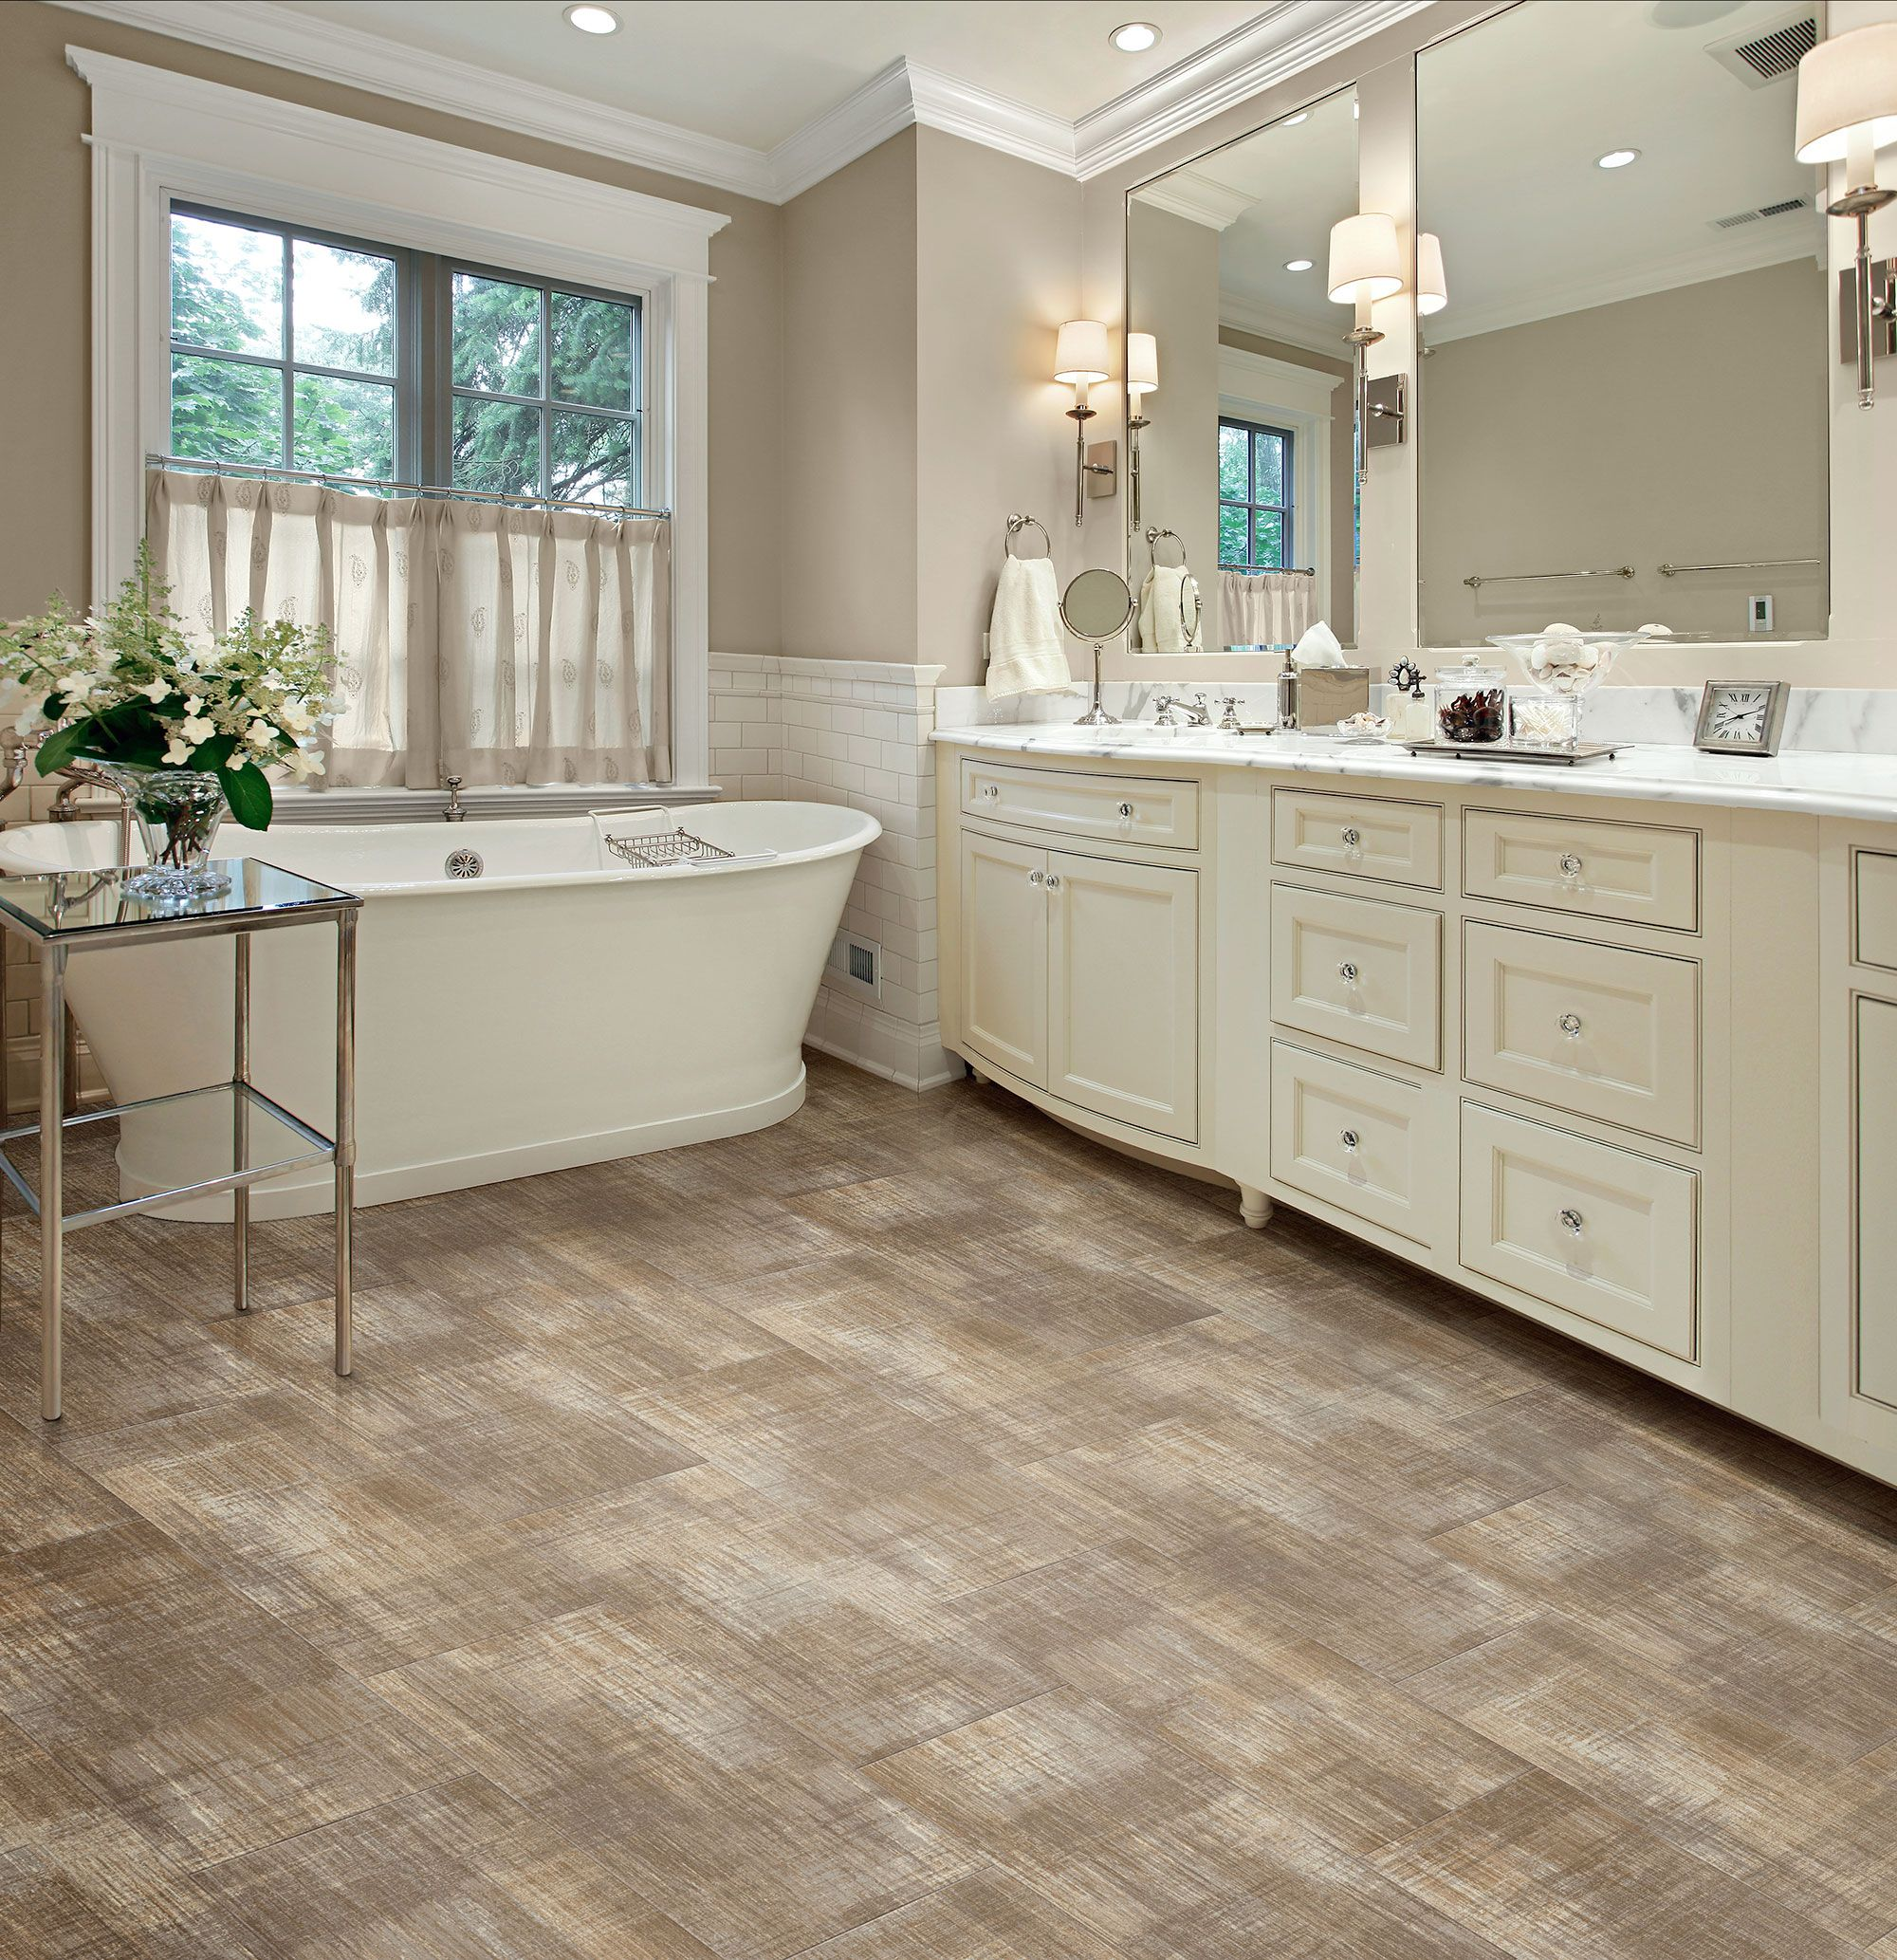 Architexture linenfold congoleum duraceramic luxury vinyl choosing the right flooring hinges on many elements lifestyle floor plan maintenance budget and overall appeal doublecrazyfo Images